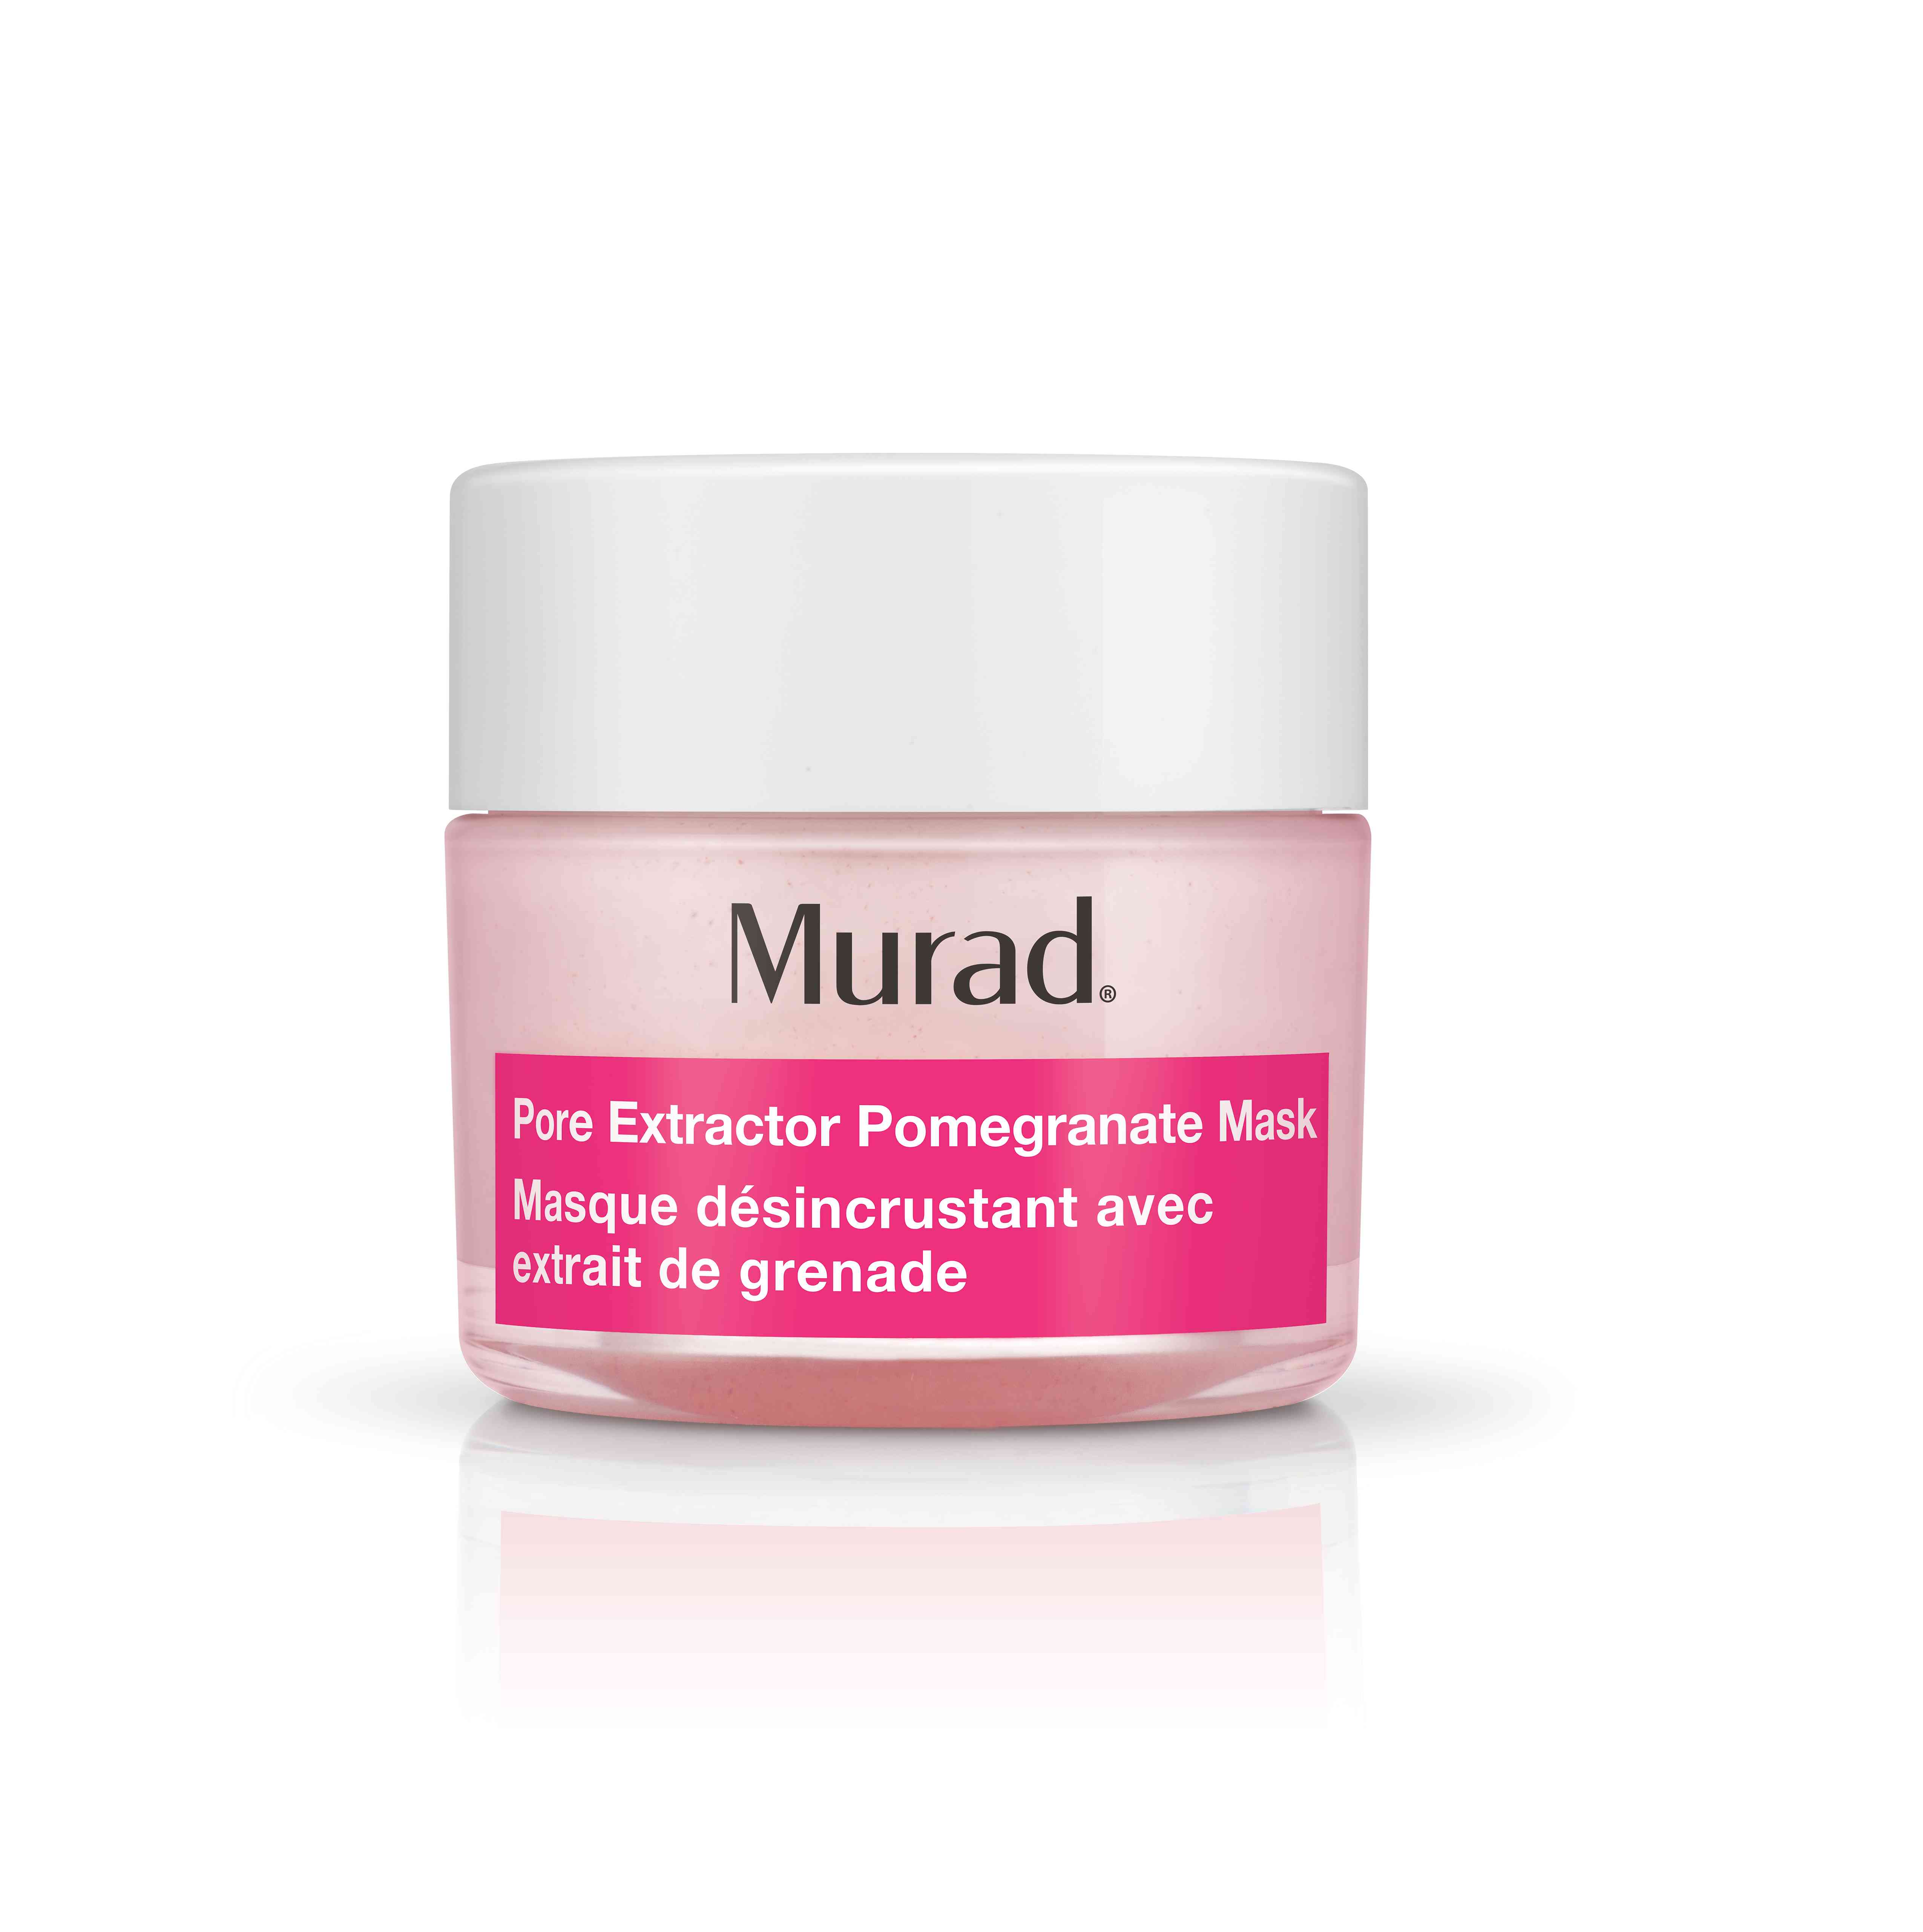 Pore Rescue Pore Extractor Pomegranate Mask in a jar, pink